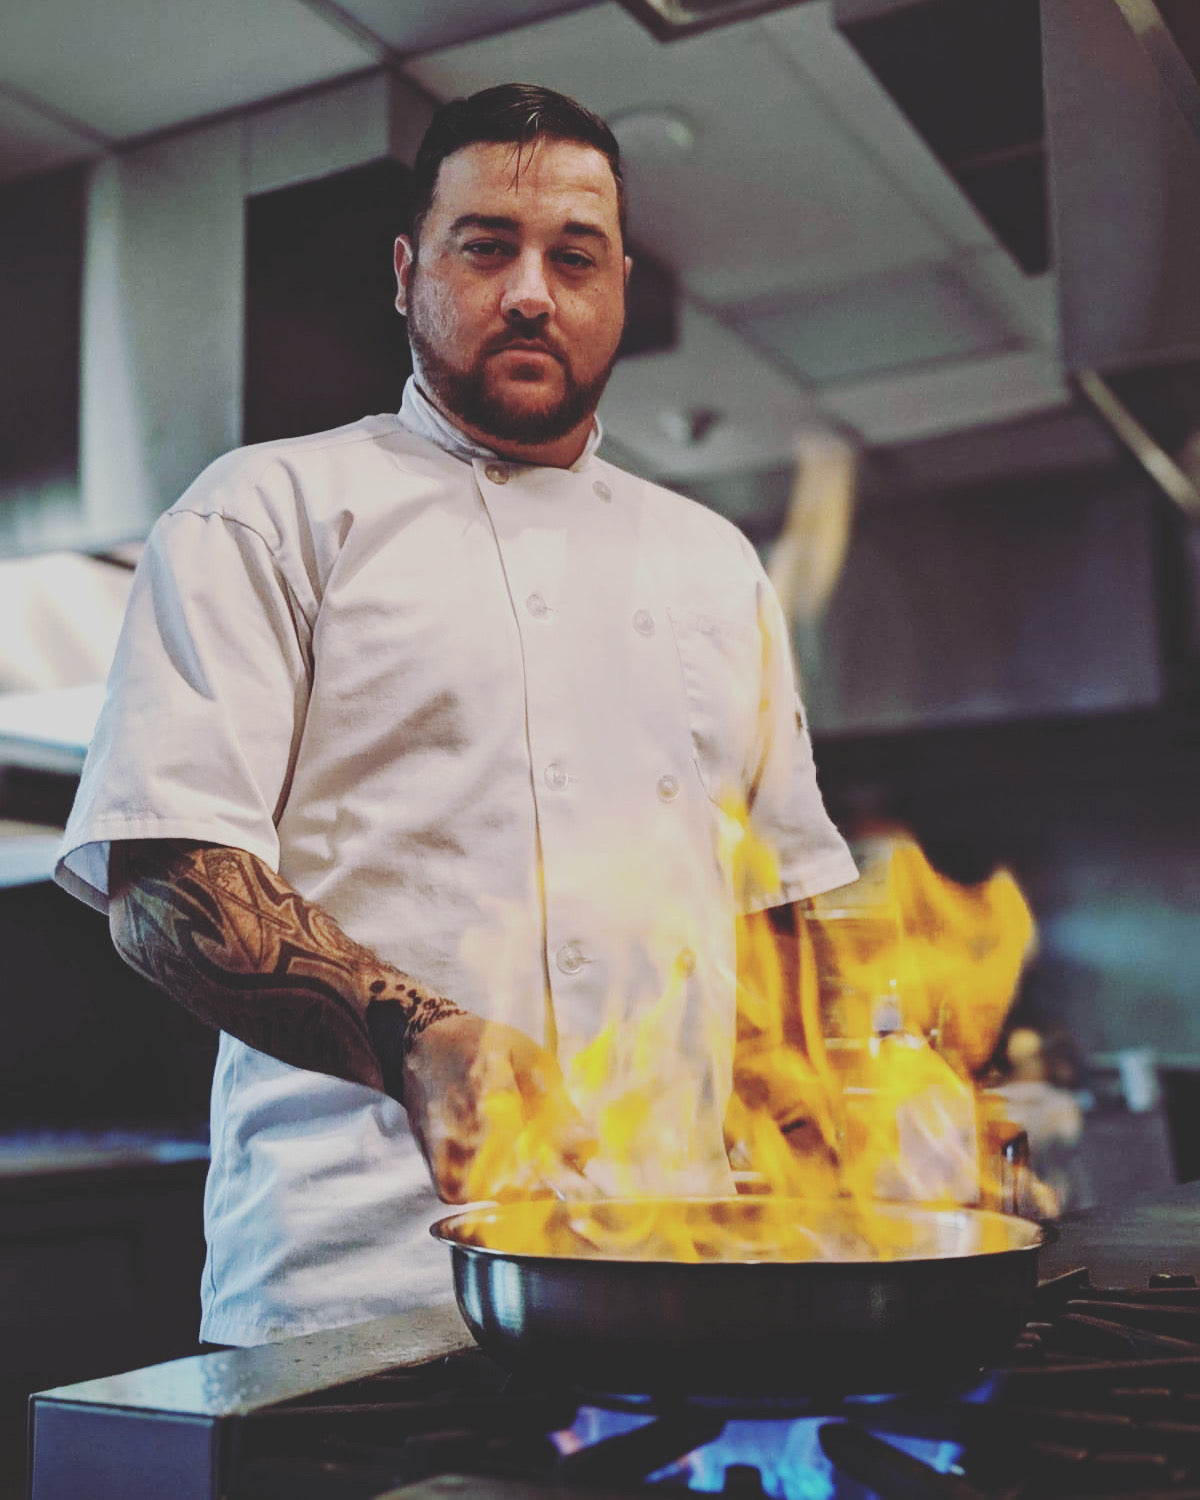 Chef Toto Antonio Belvedere interviews with Karl Schmitz for Heart On My Sleeve Spotlight Interviews with Creatives